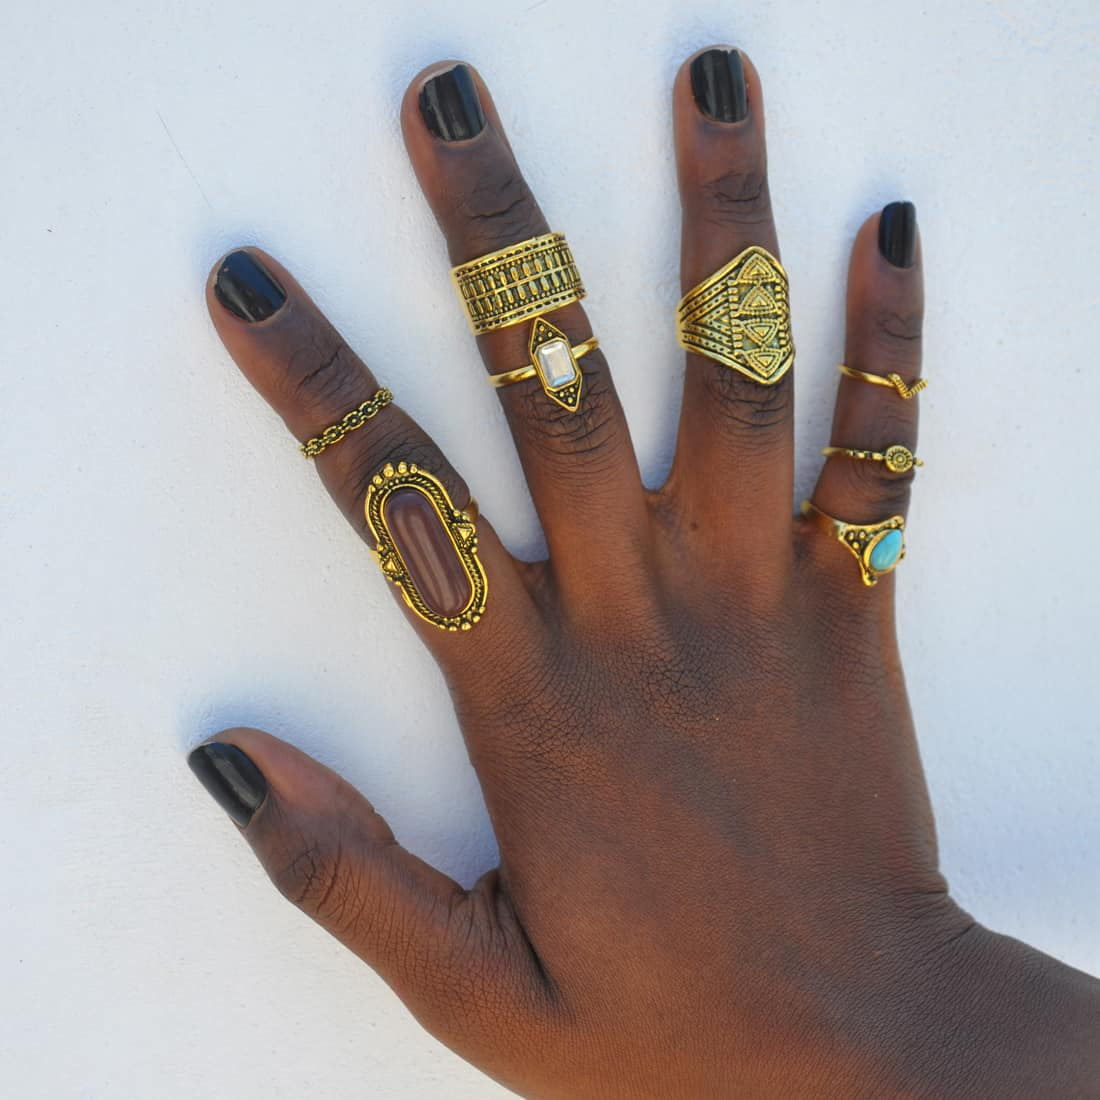 M0338 gold6 Jewelry Sets Rings maureens.com boutique